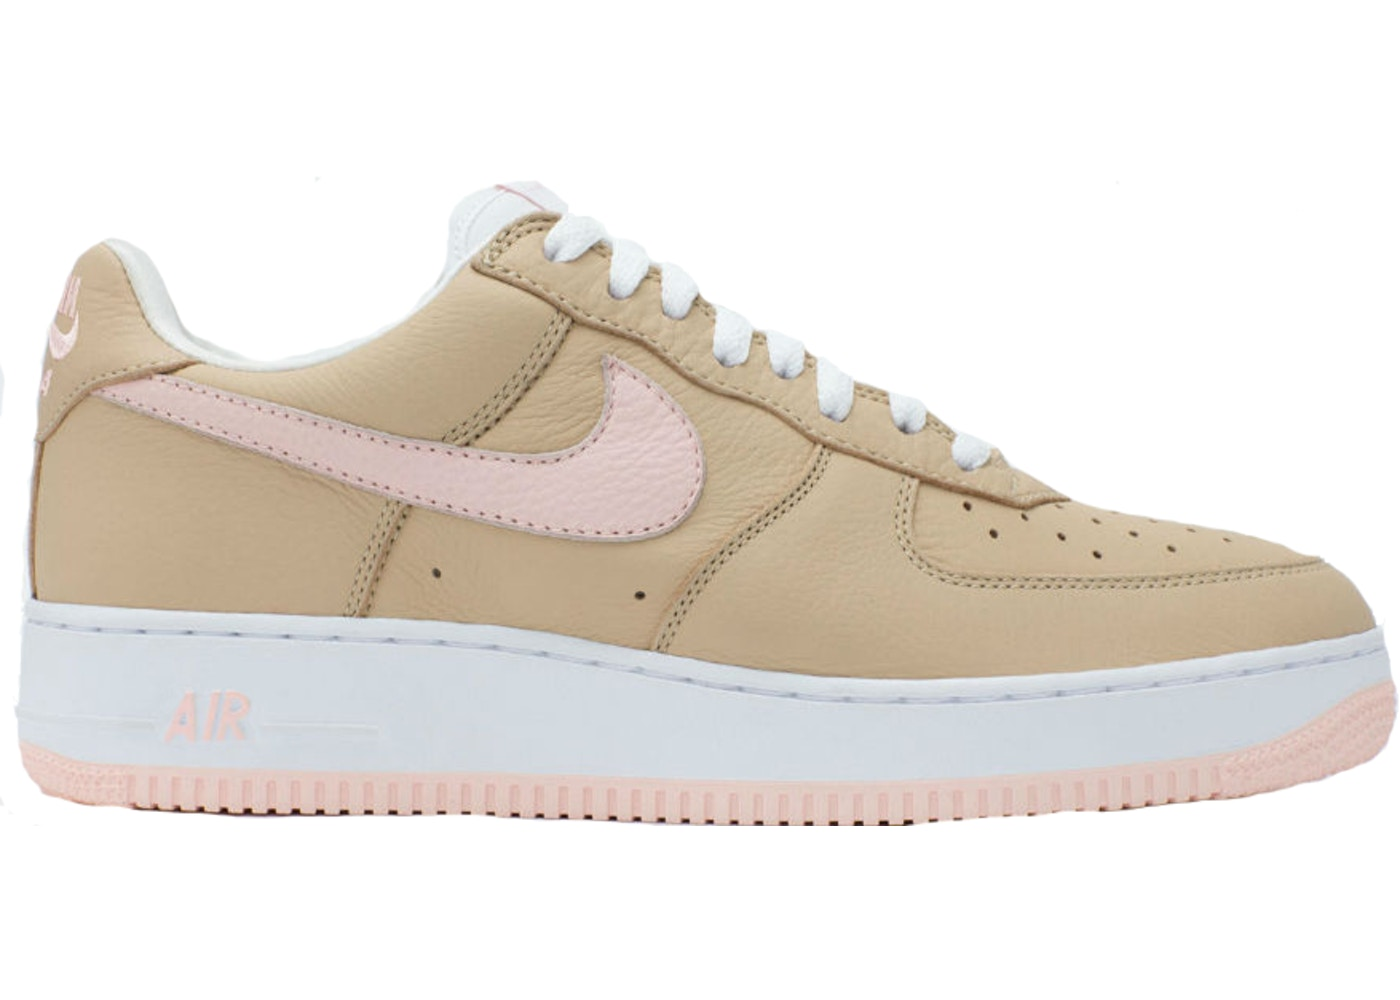 462c7359c3bf Air Force 1 Low Linen Kith Exclusive